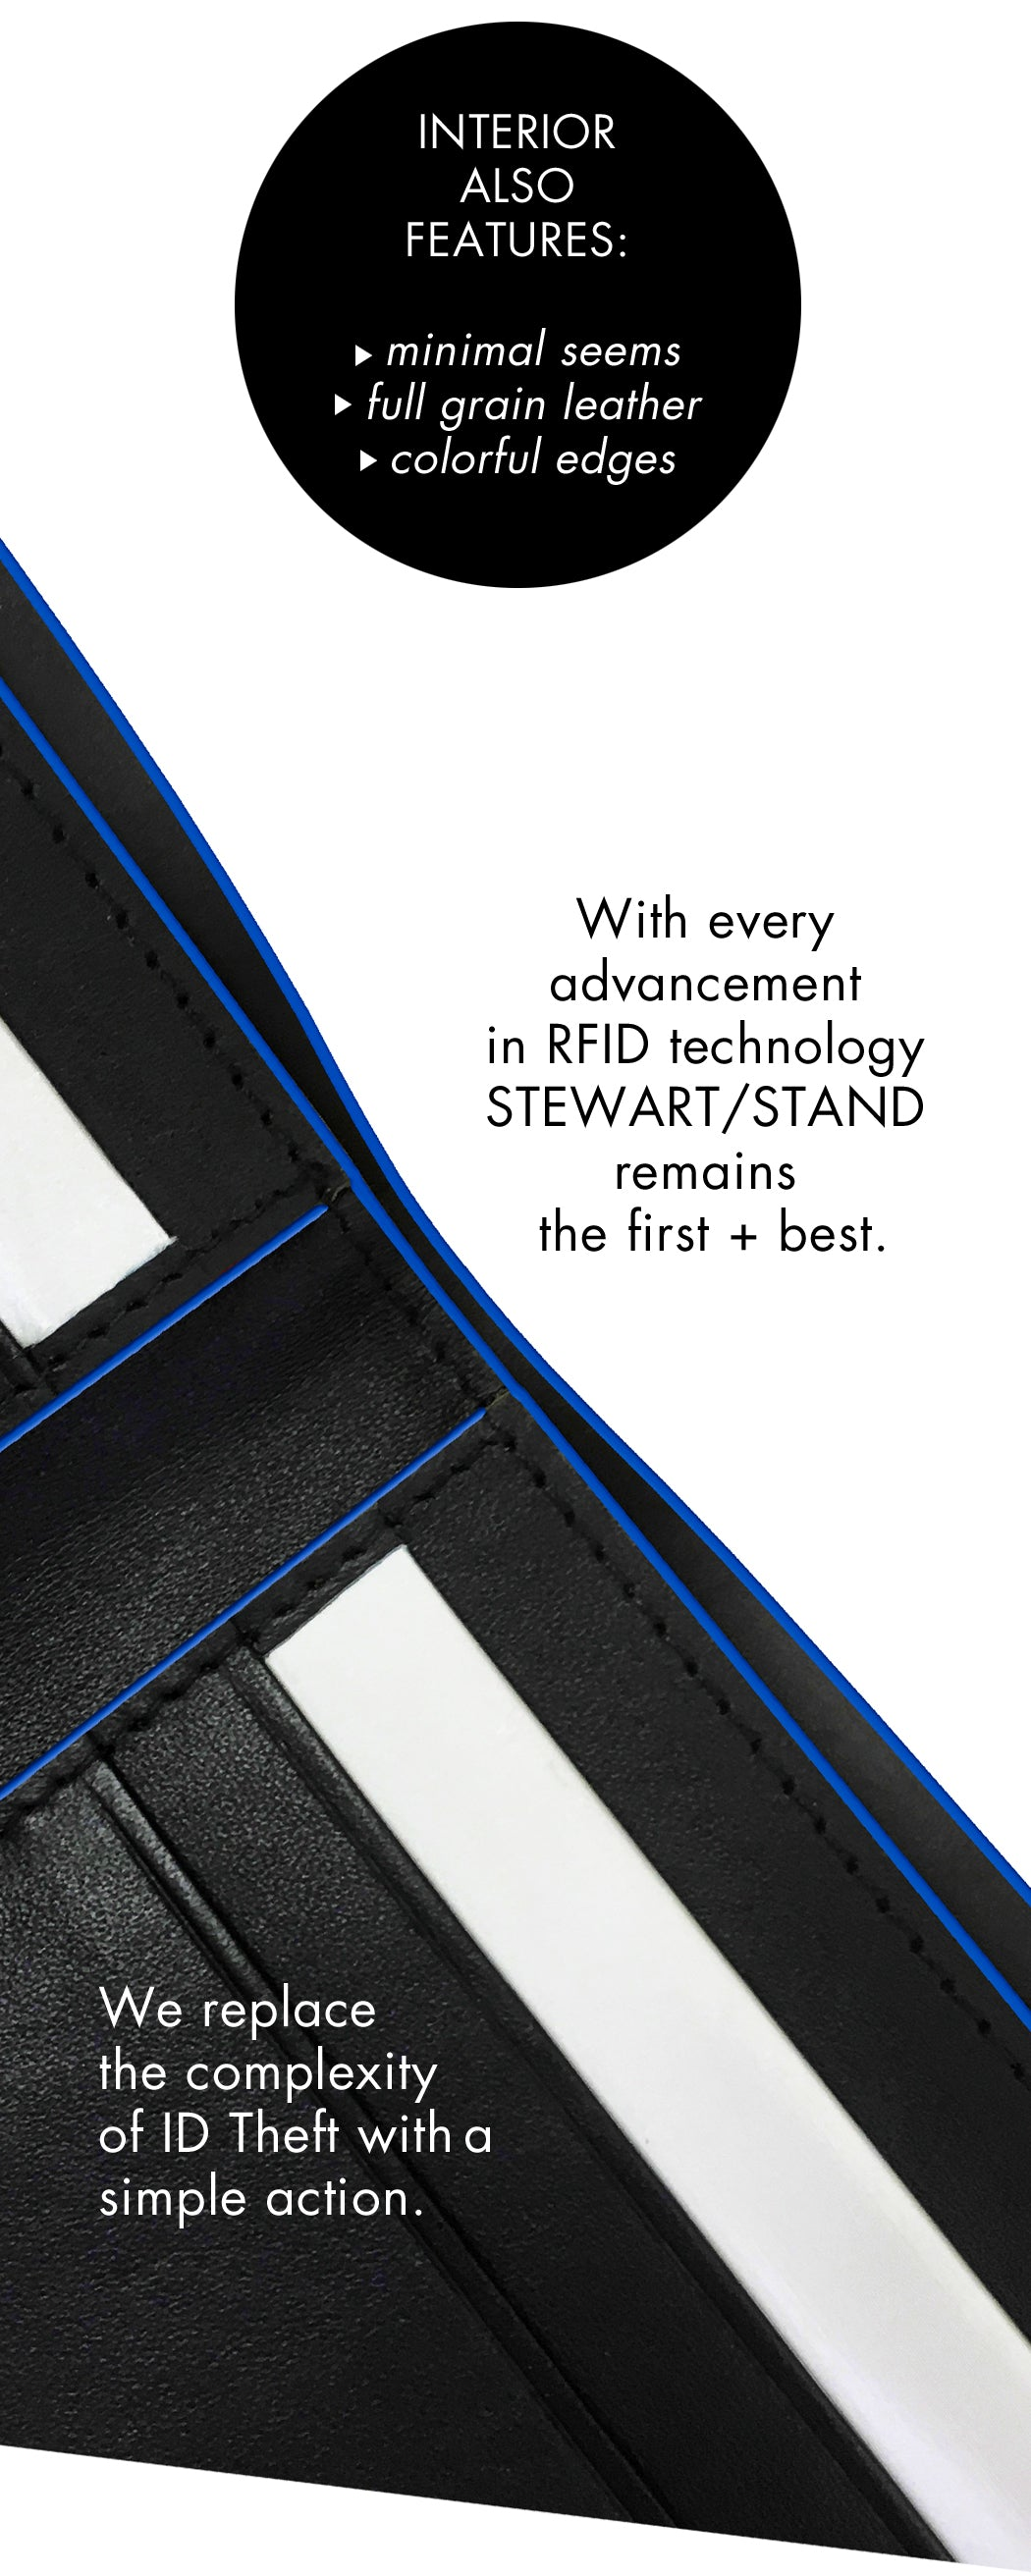 aperture wallet, rfid blocking, stewartstand, chevron8